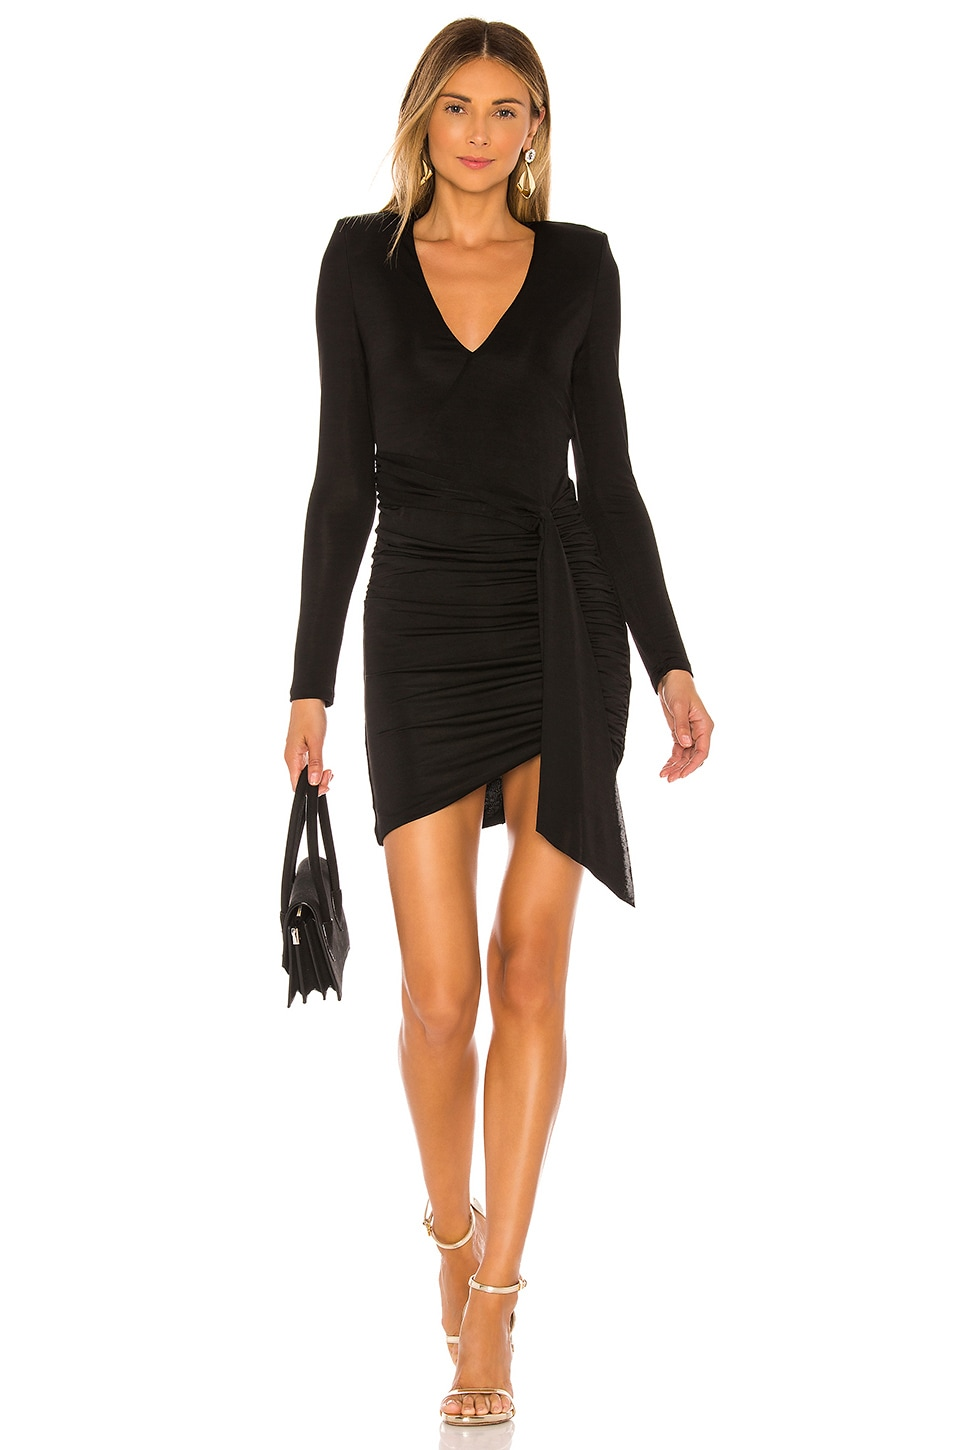 Alice + Olivia Kyra Deep V Drapey Mini Dress in Black